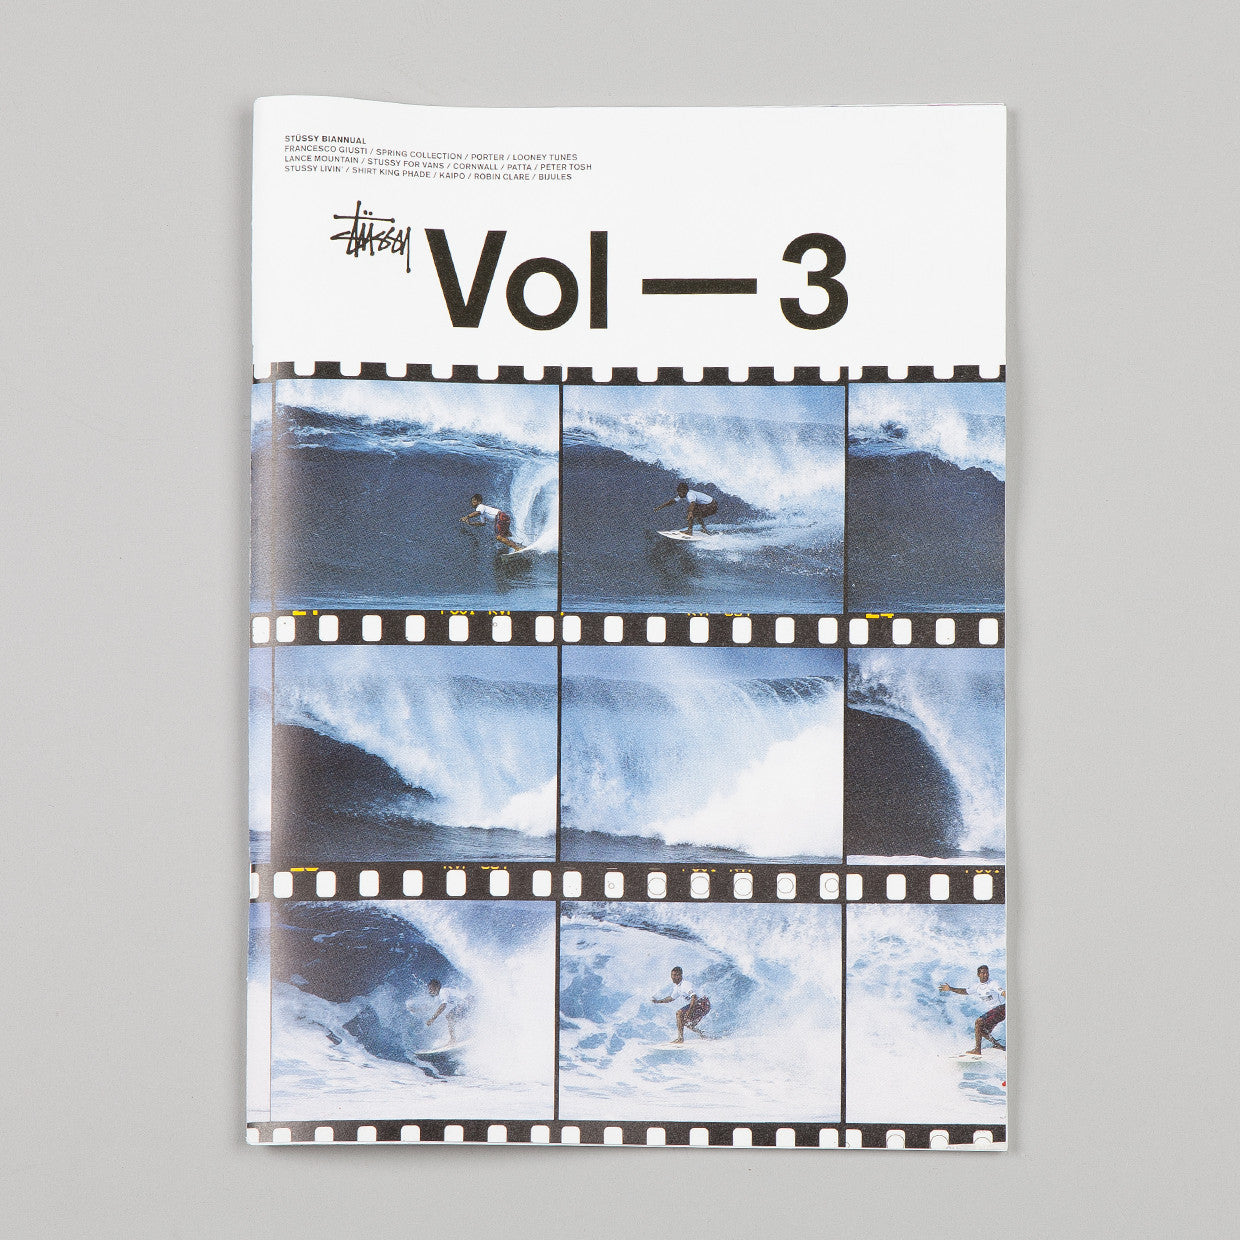 Stussy Biannual Volume 3 / Surf Cover